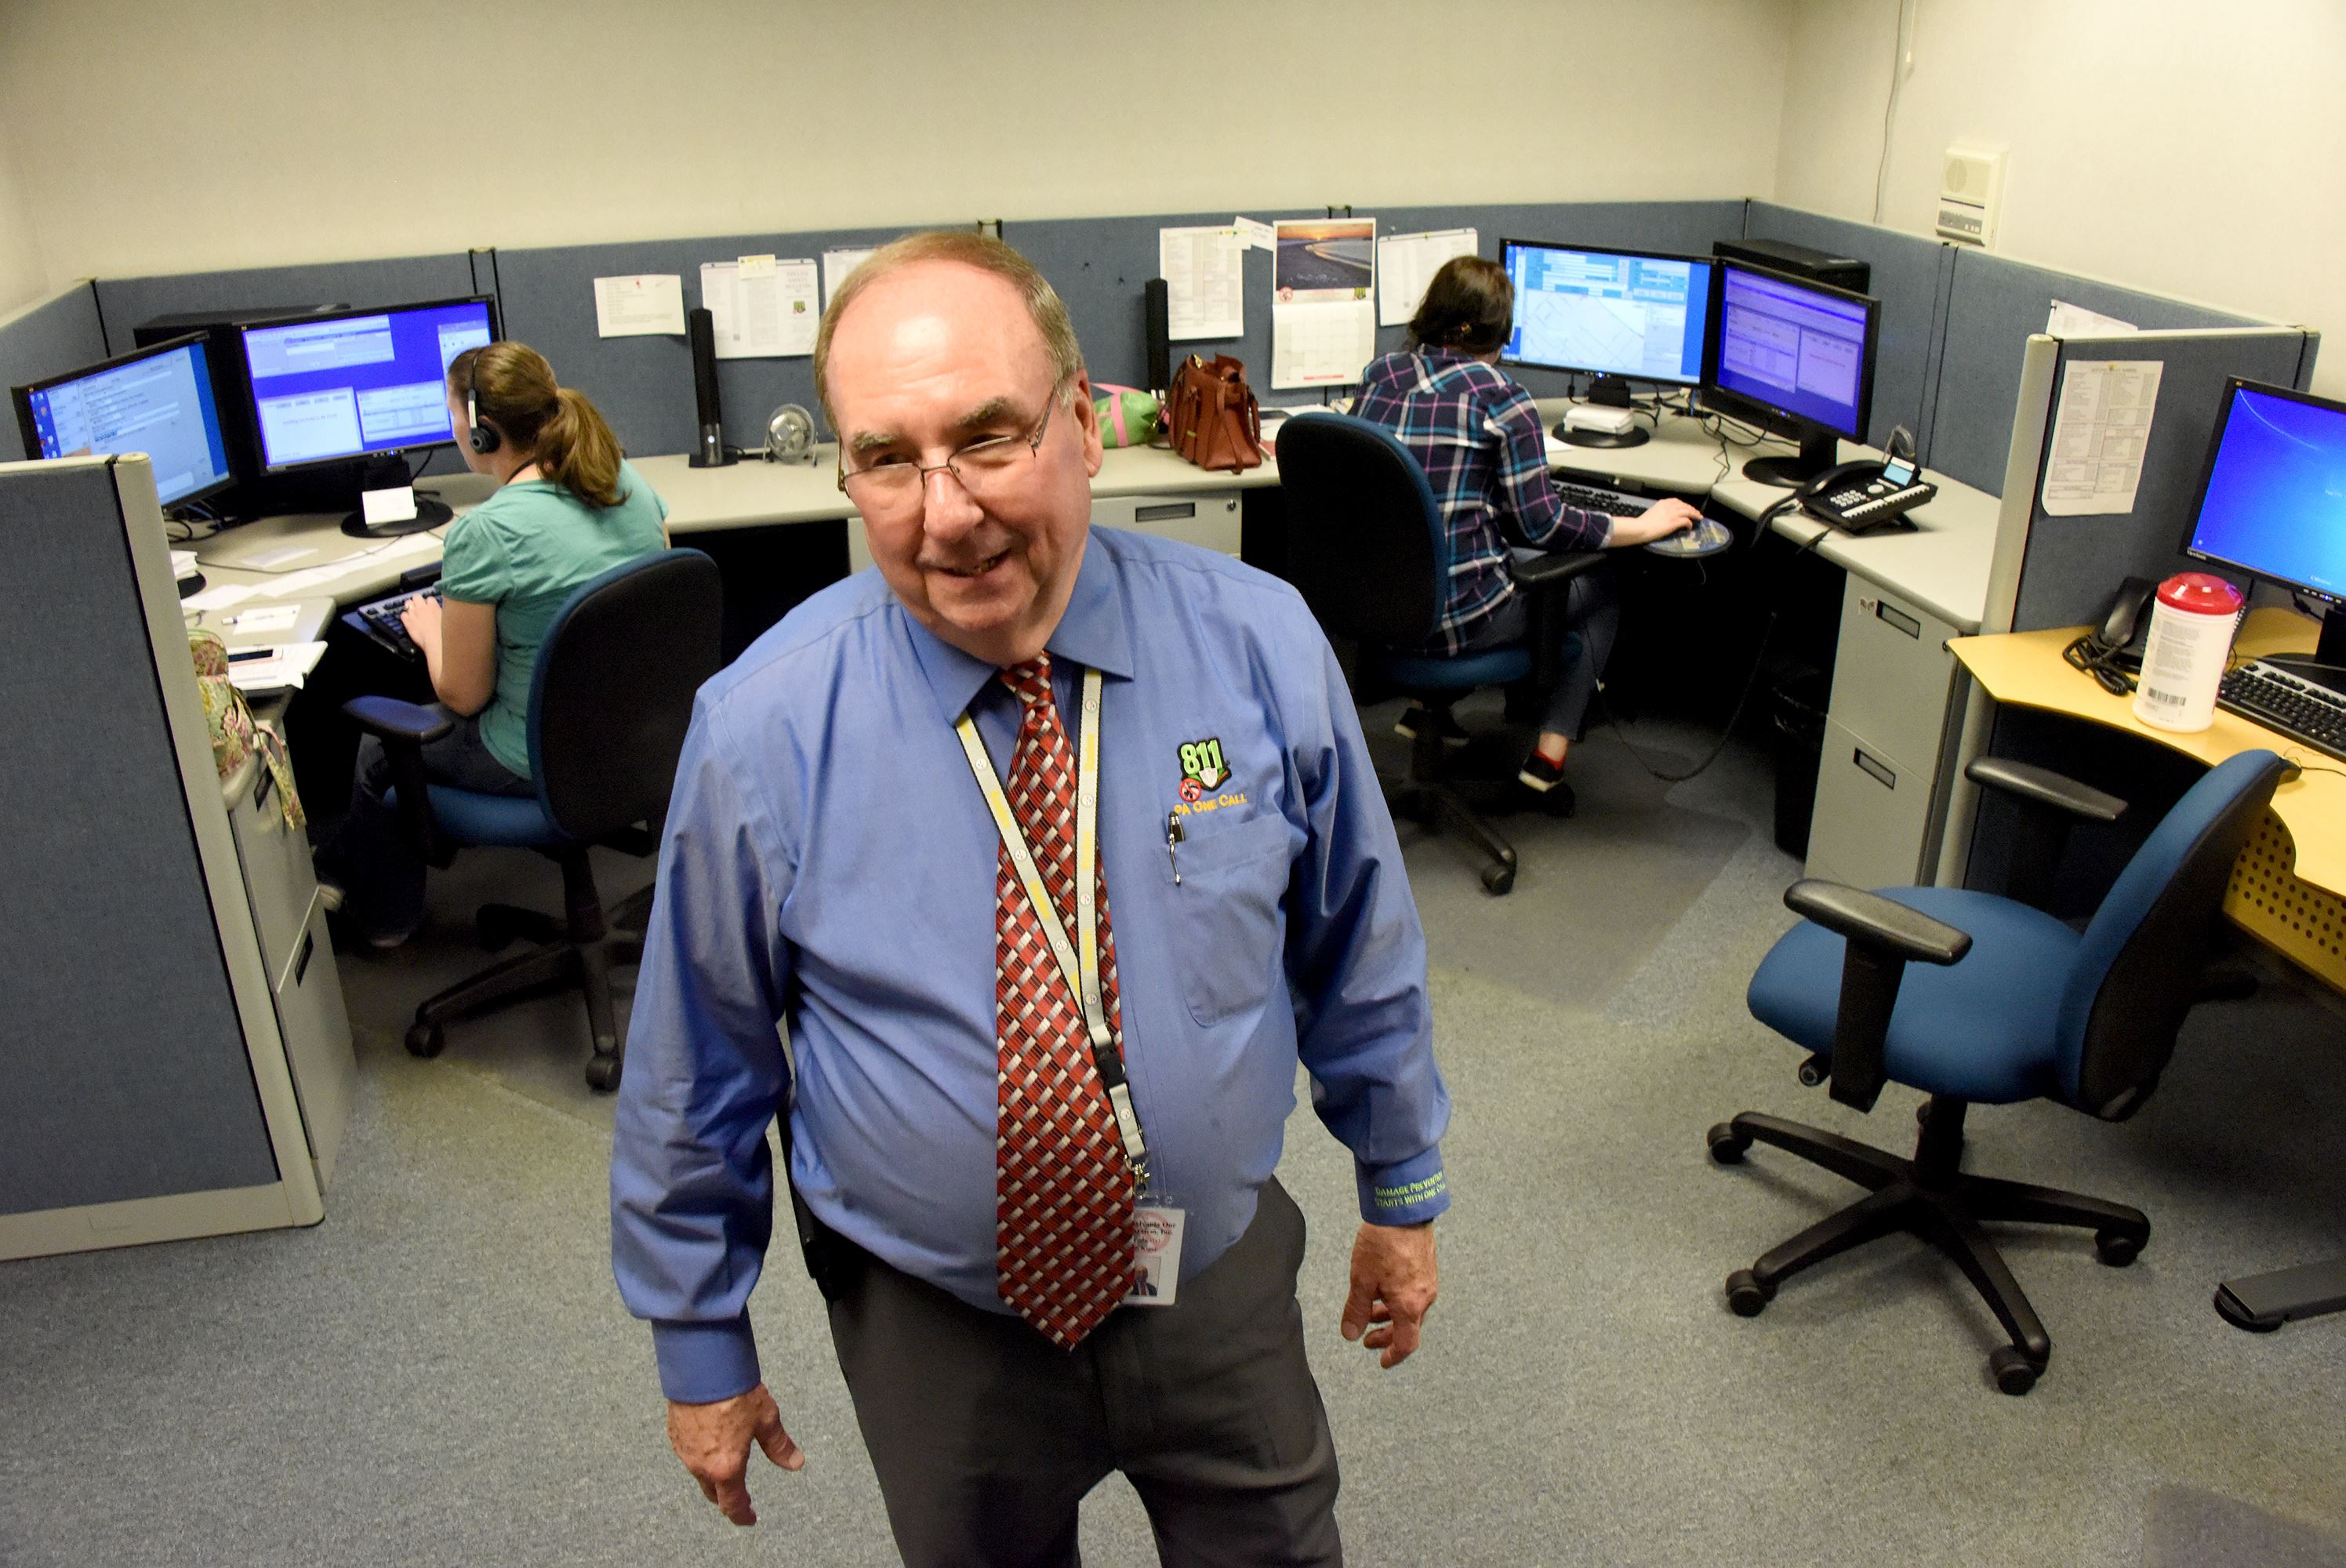 20170224dsTop50ONECALL0526Biz05-4 Director Bill Kiger walks through the 24 hour service area of Pennsylvania One Call System Inc., located in West Mifflin. Bill has been with the Call Center for 42 years.